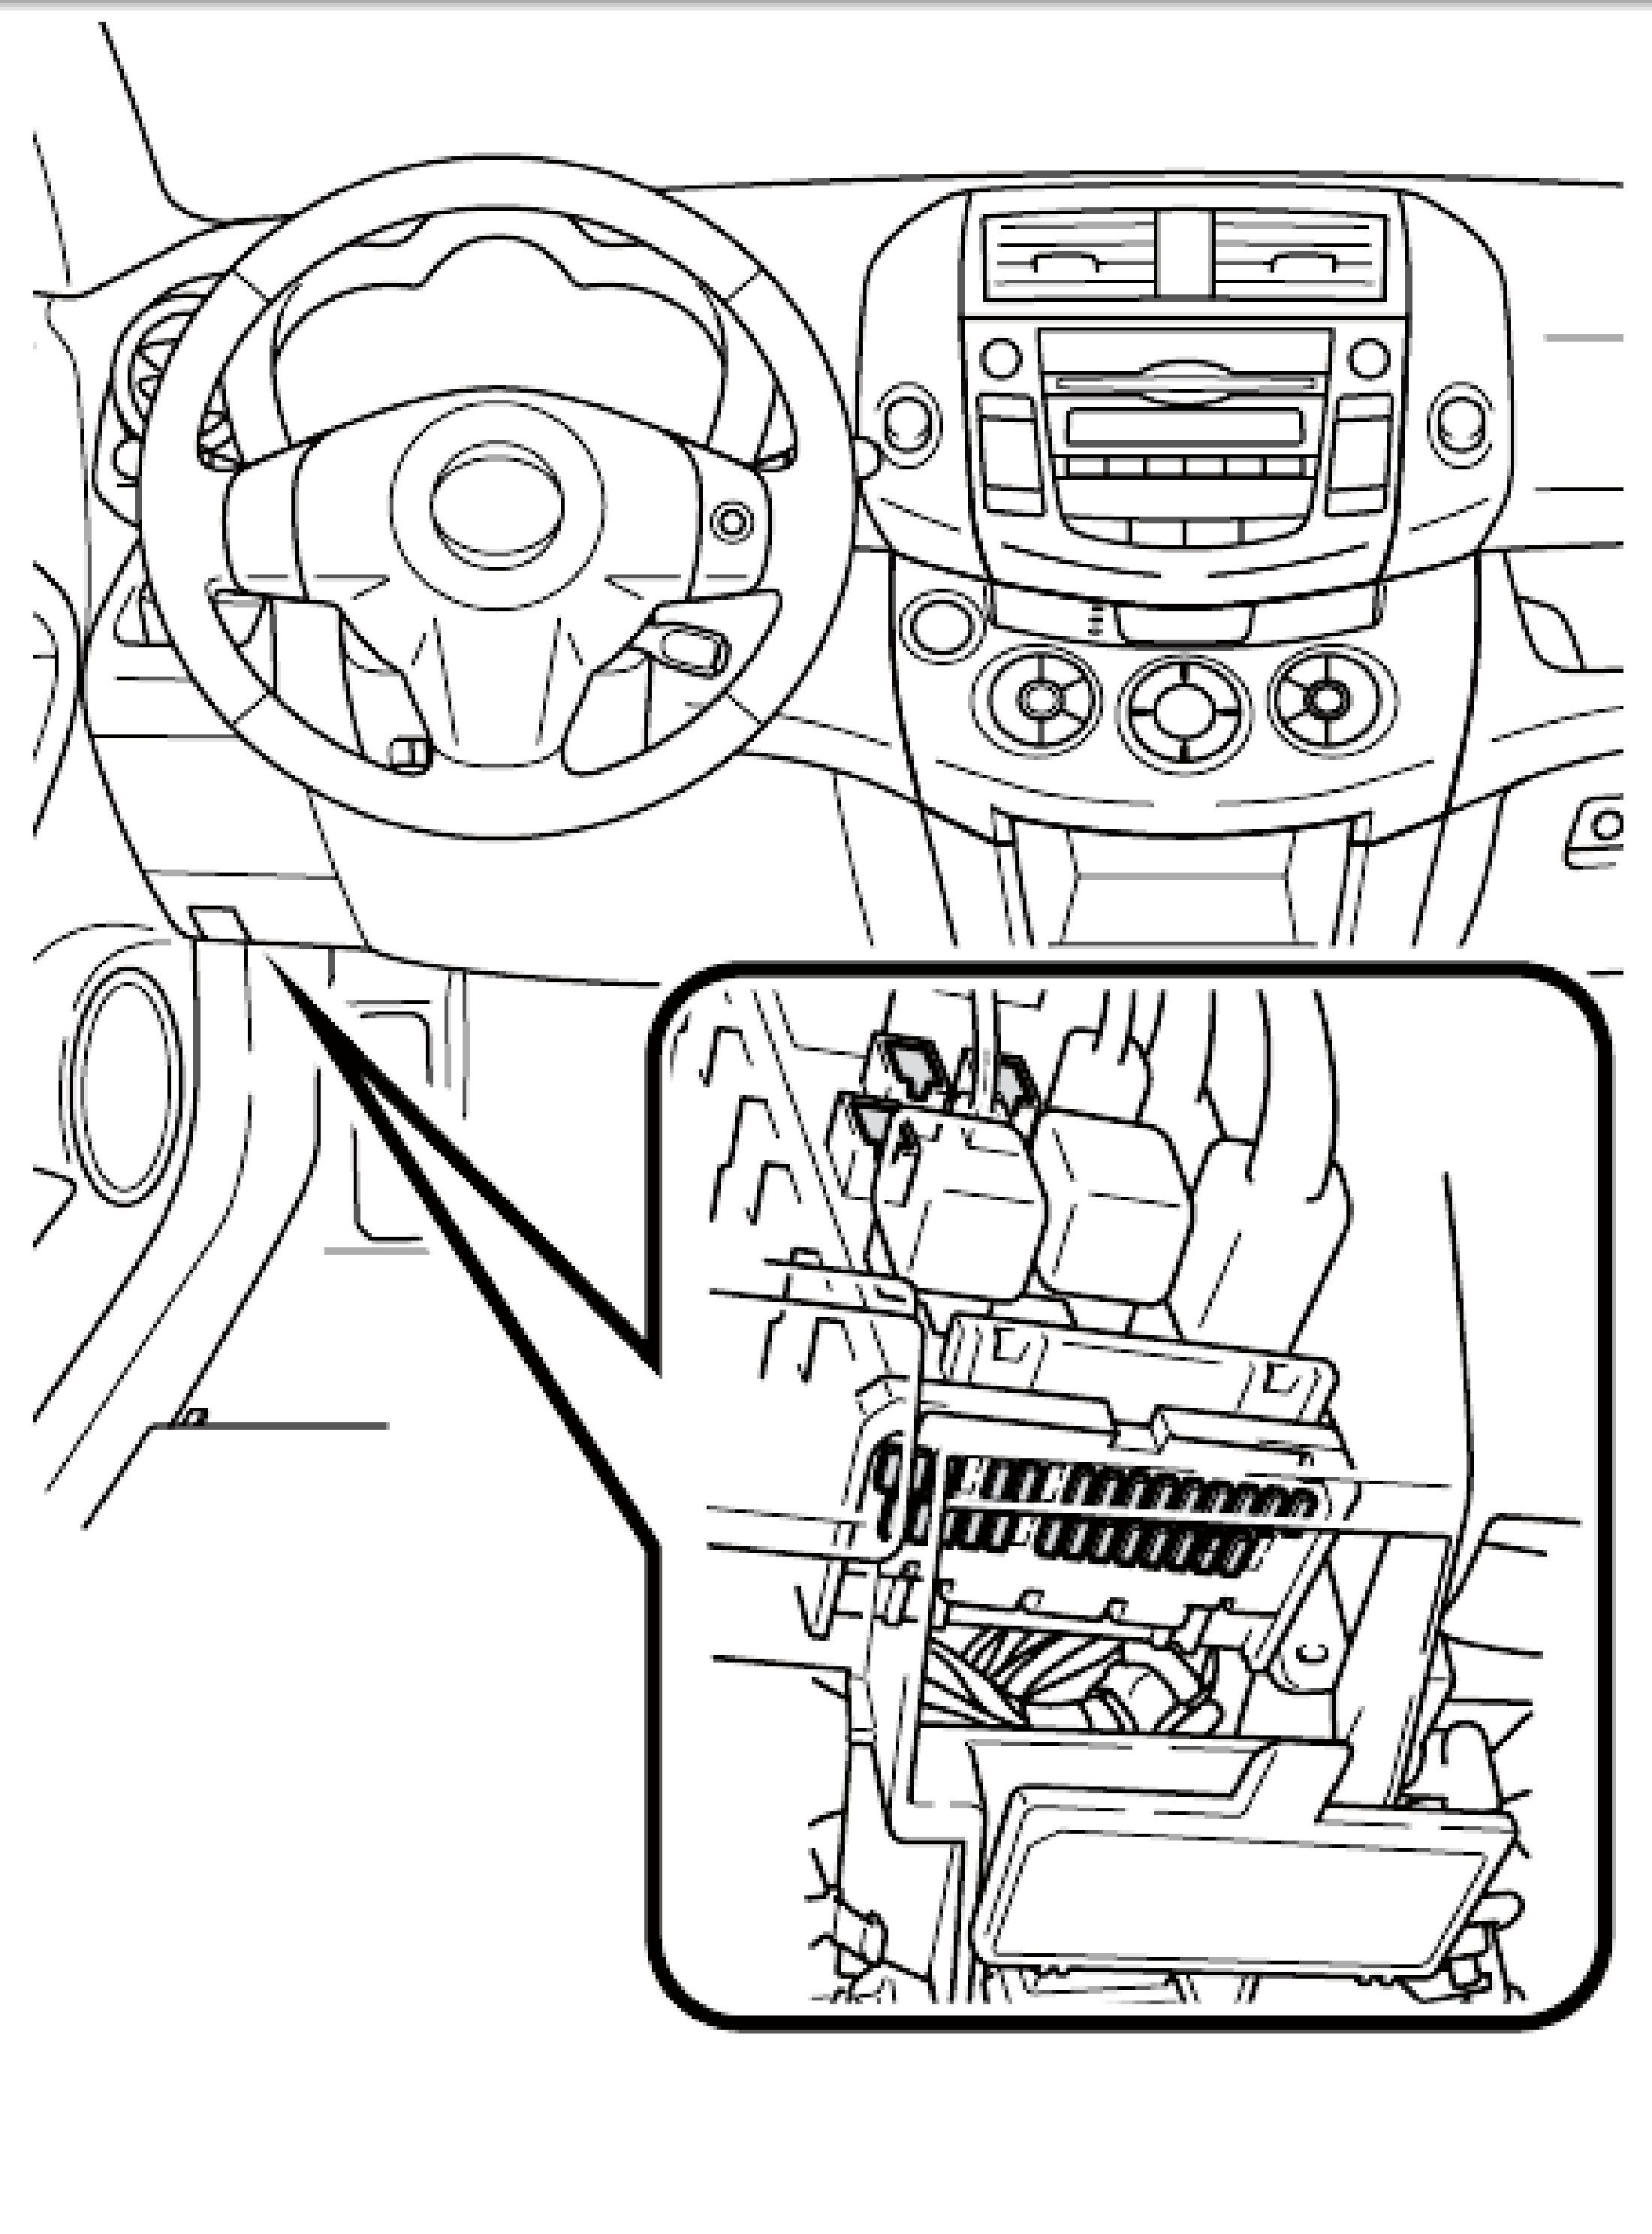 1993 toyota corolla fuse box diagram ItXOytB 1993 toyota corolla fuse box diagram image details 2012 toyota corolla fuse box location at fashall.co